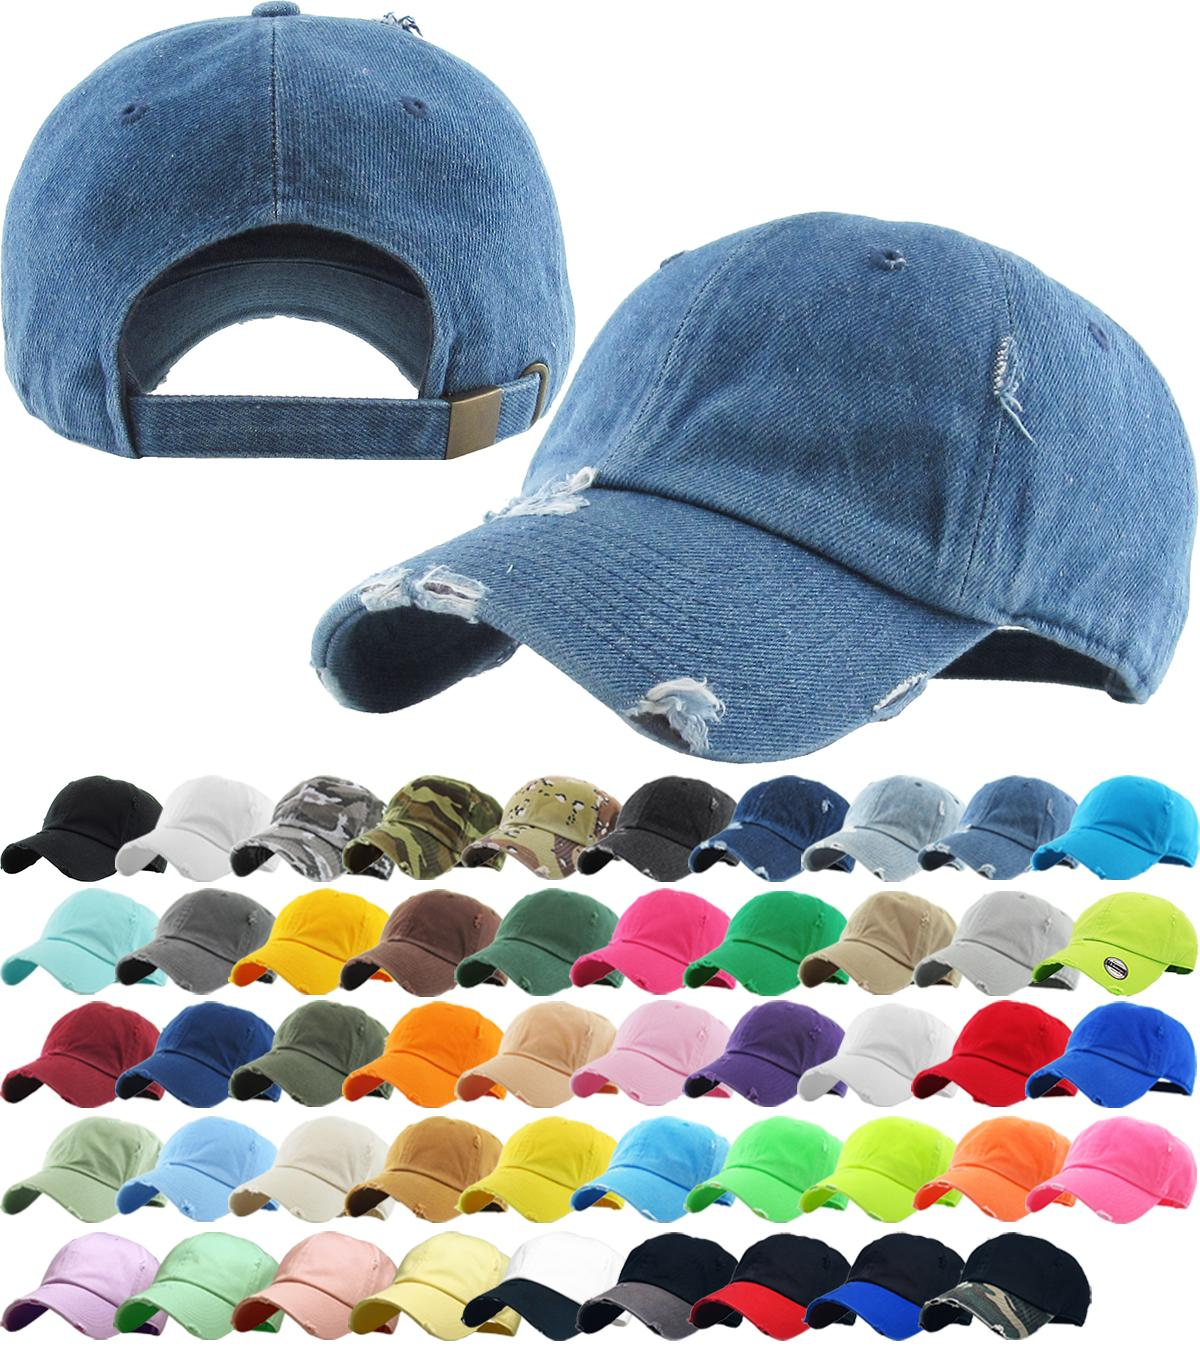 Wholesale Caps White Dad Hats Wholesale Price Baseball Hat Strap Back Dad Hats 12 Solid Black Dad Hats Blank Dad Hat Mix and Match